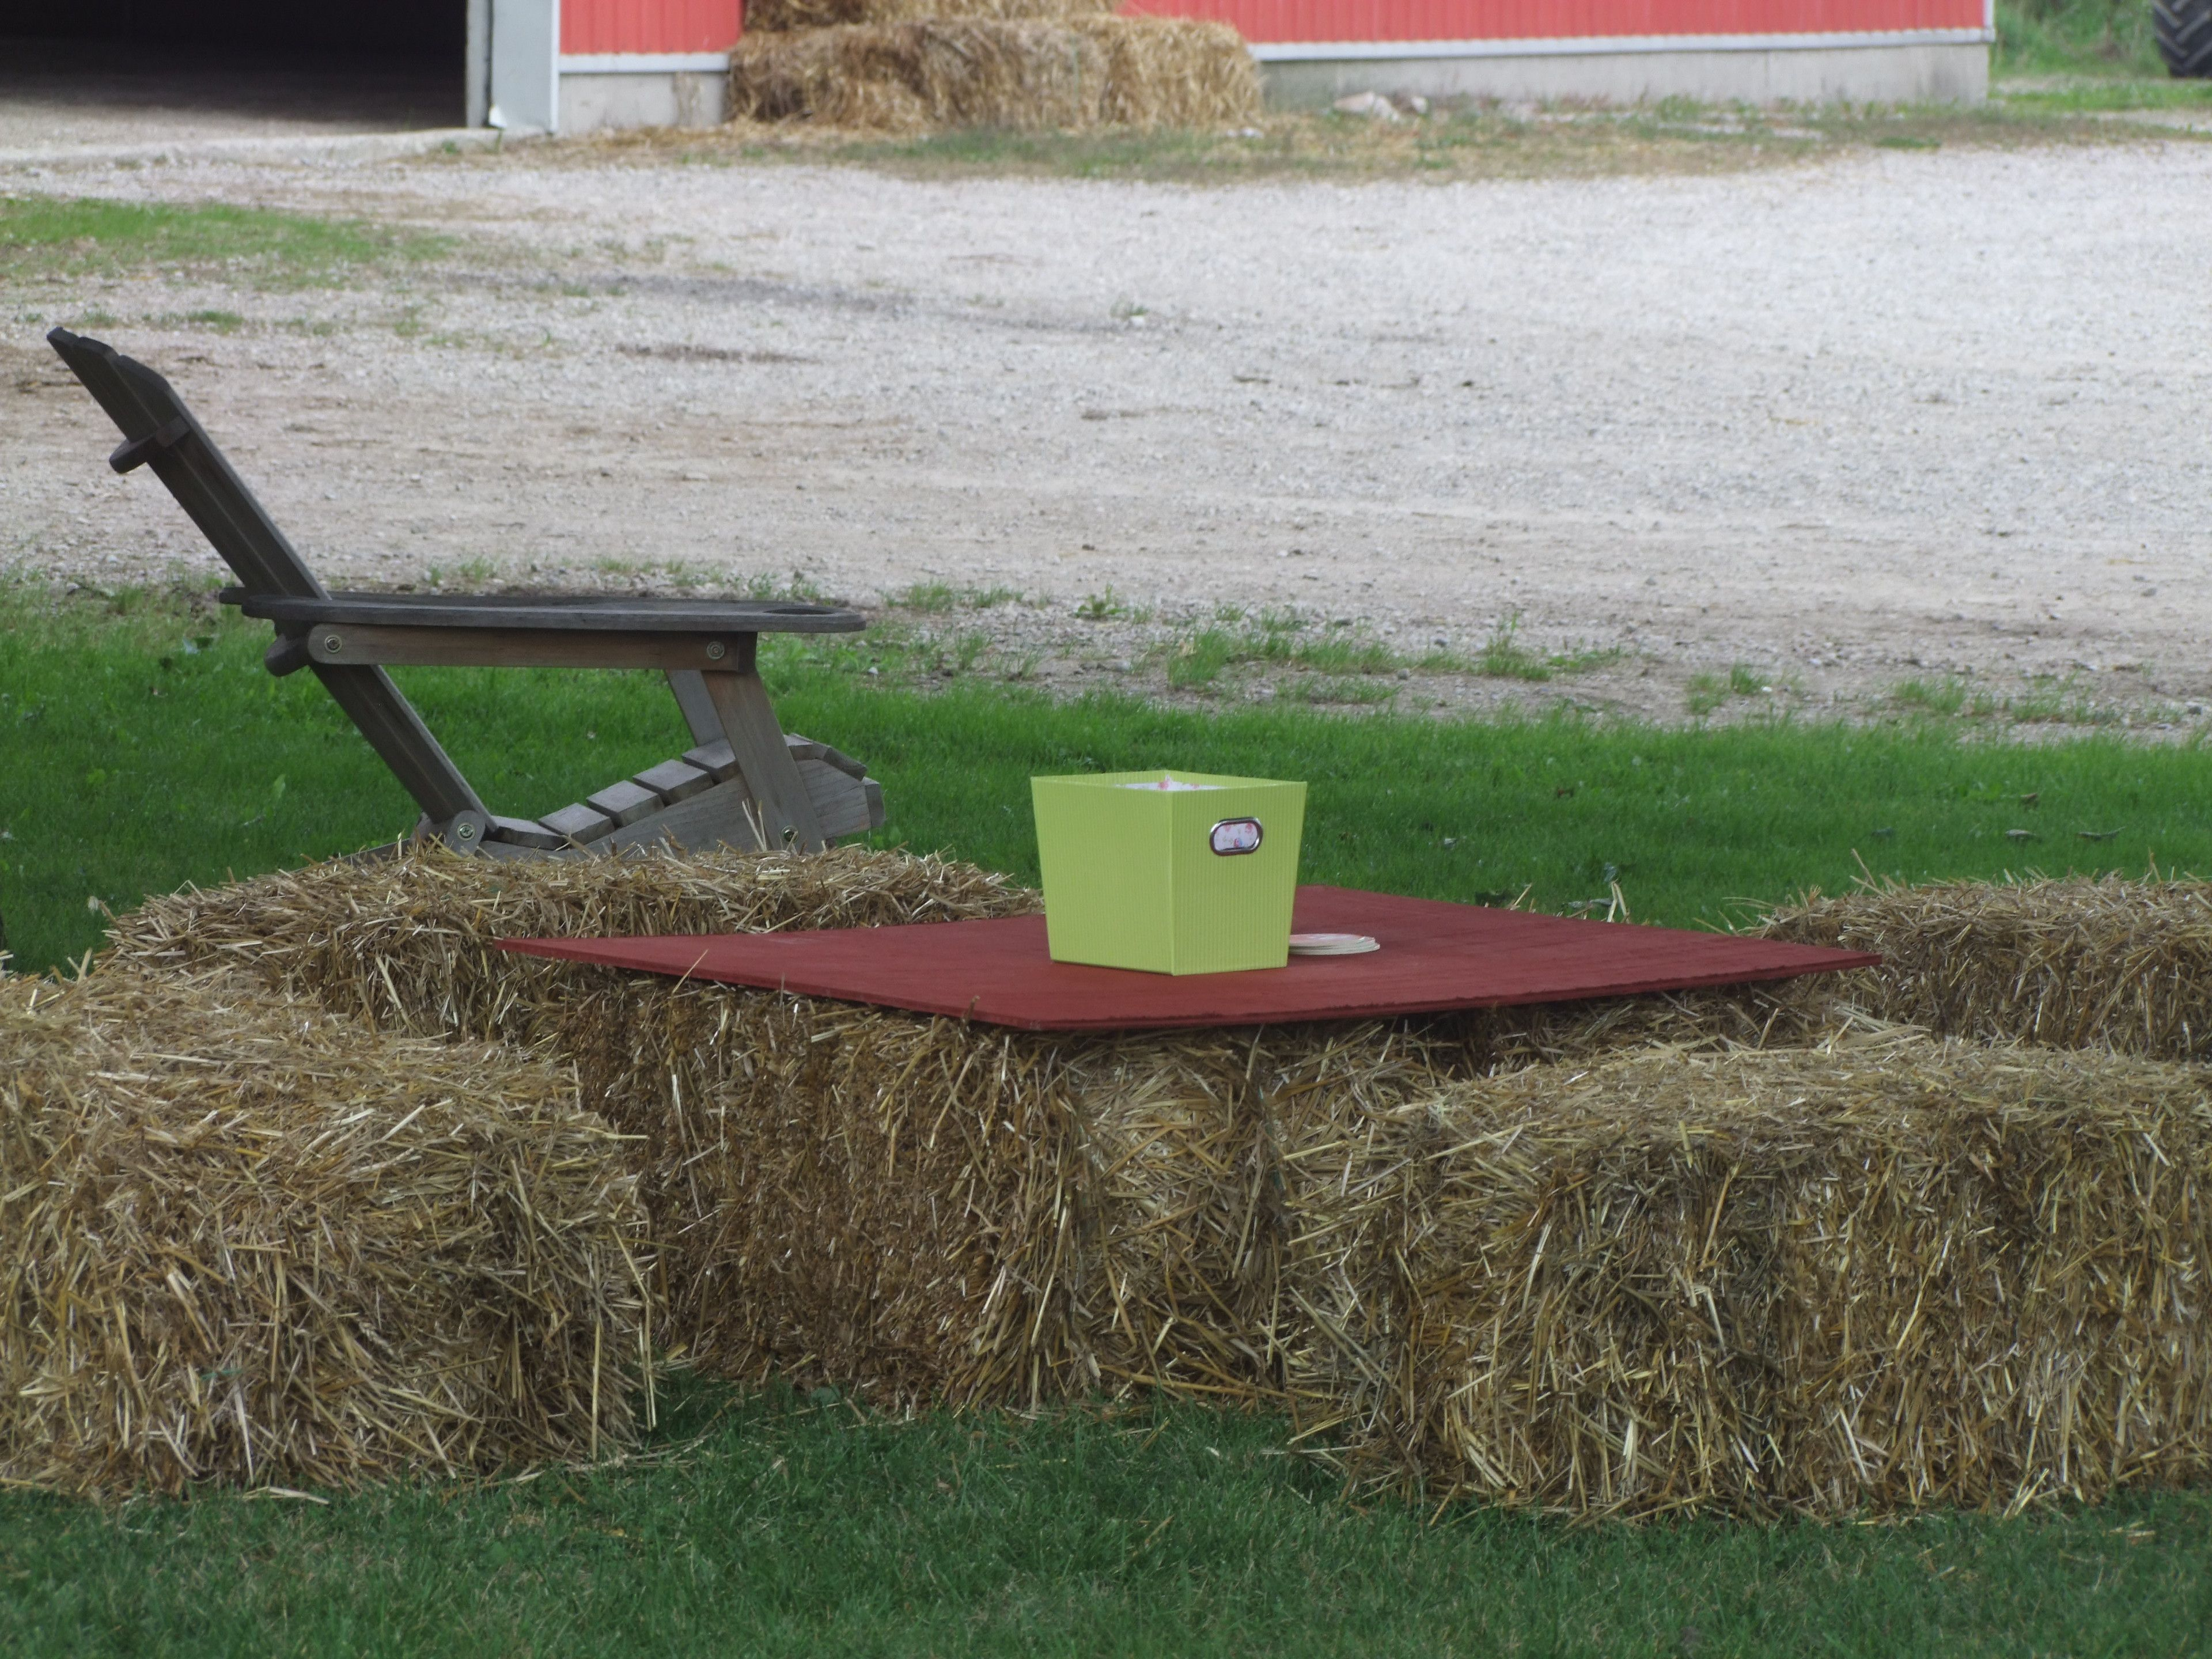 hay bale table and wood pallet | ... straw bale seats decorated with diy  lace runners, palet tables & old | Jill and Larry's Wedding | Pinterest |  Lace ...